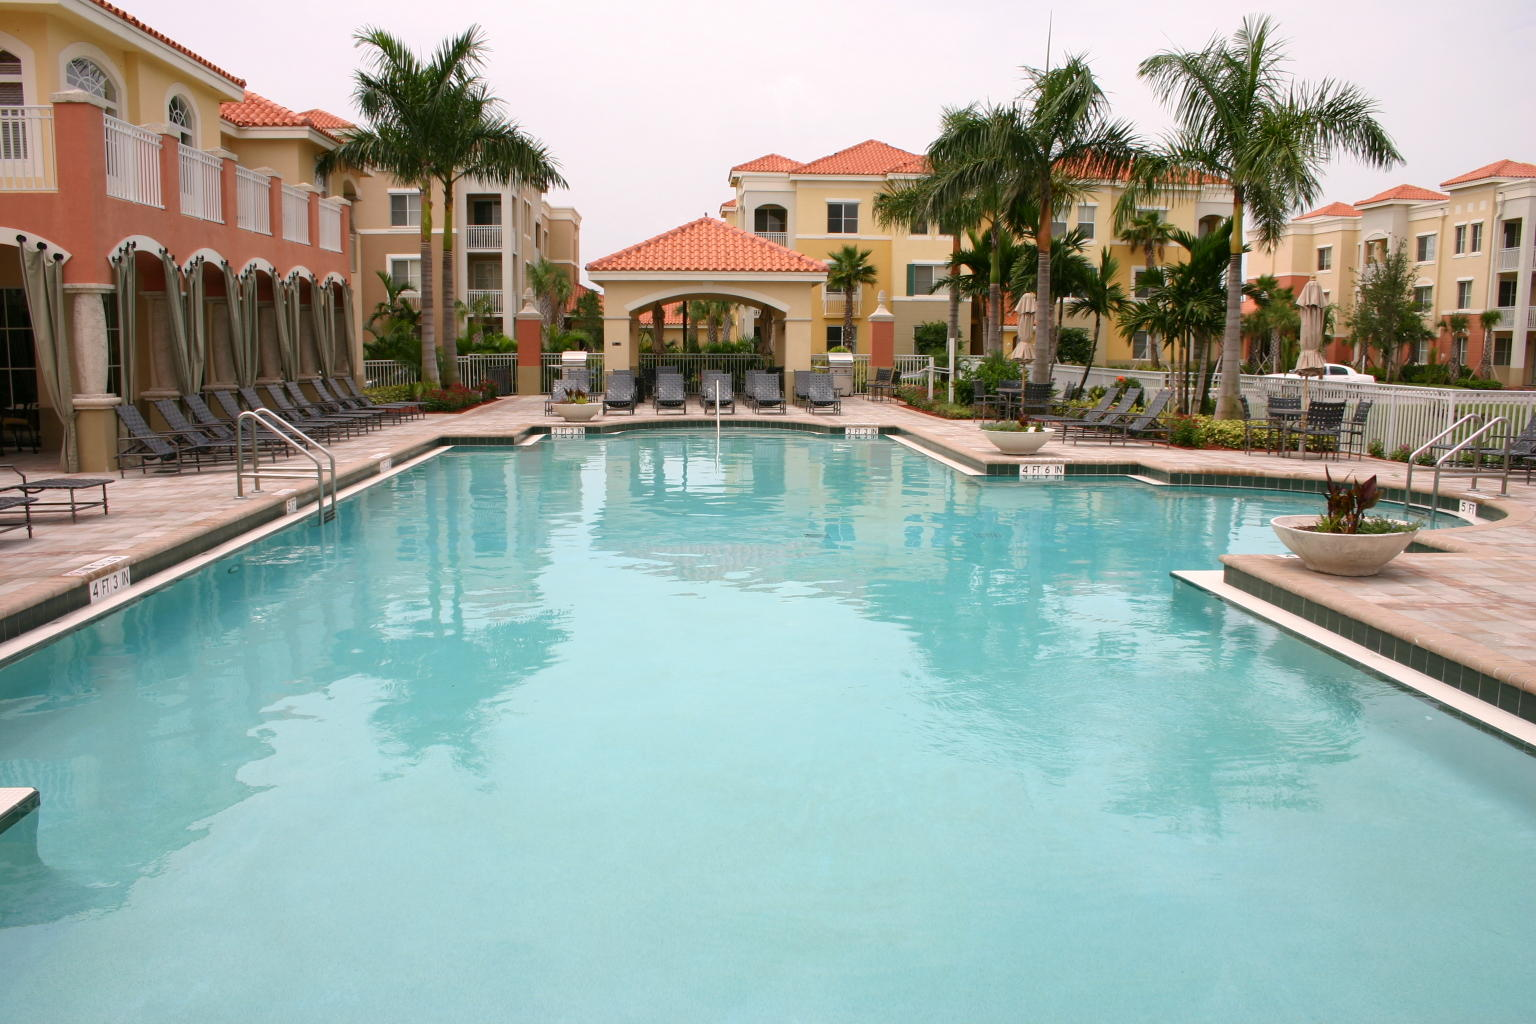 LEGACY PLACE PALM BEACH GARDENS REAL ESTATE